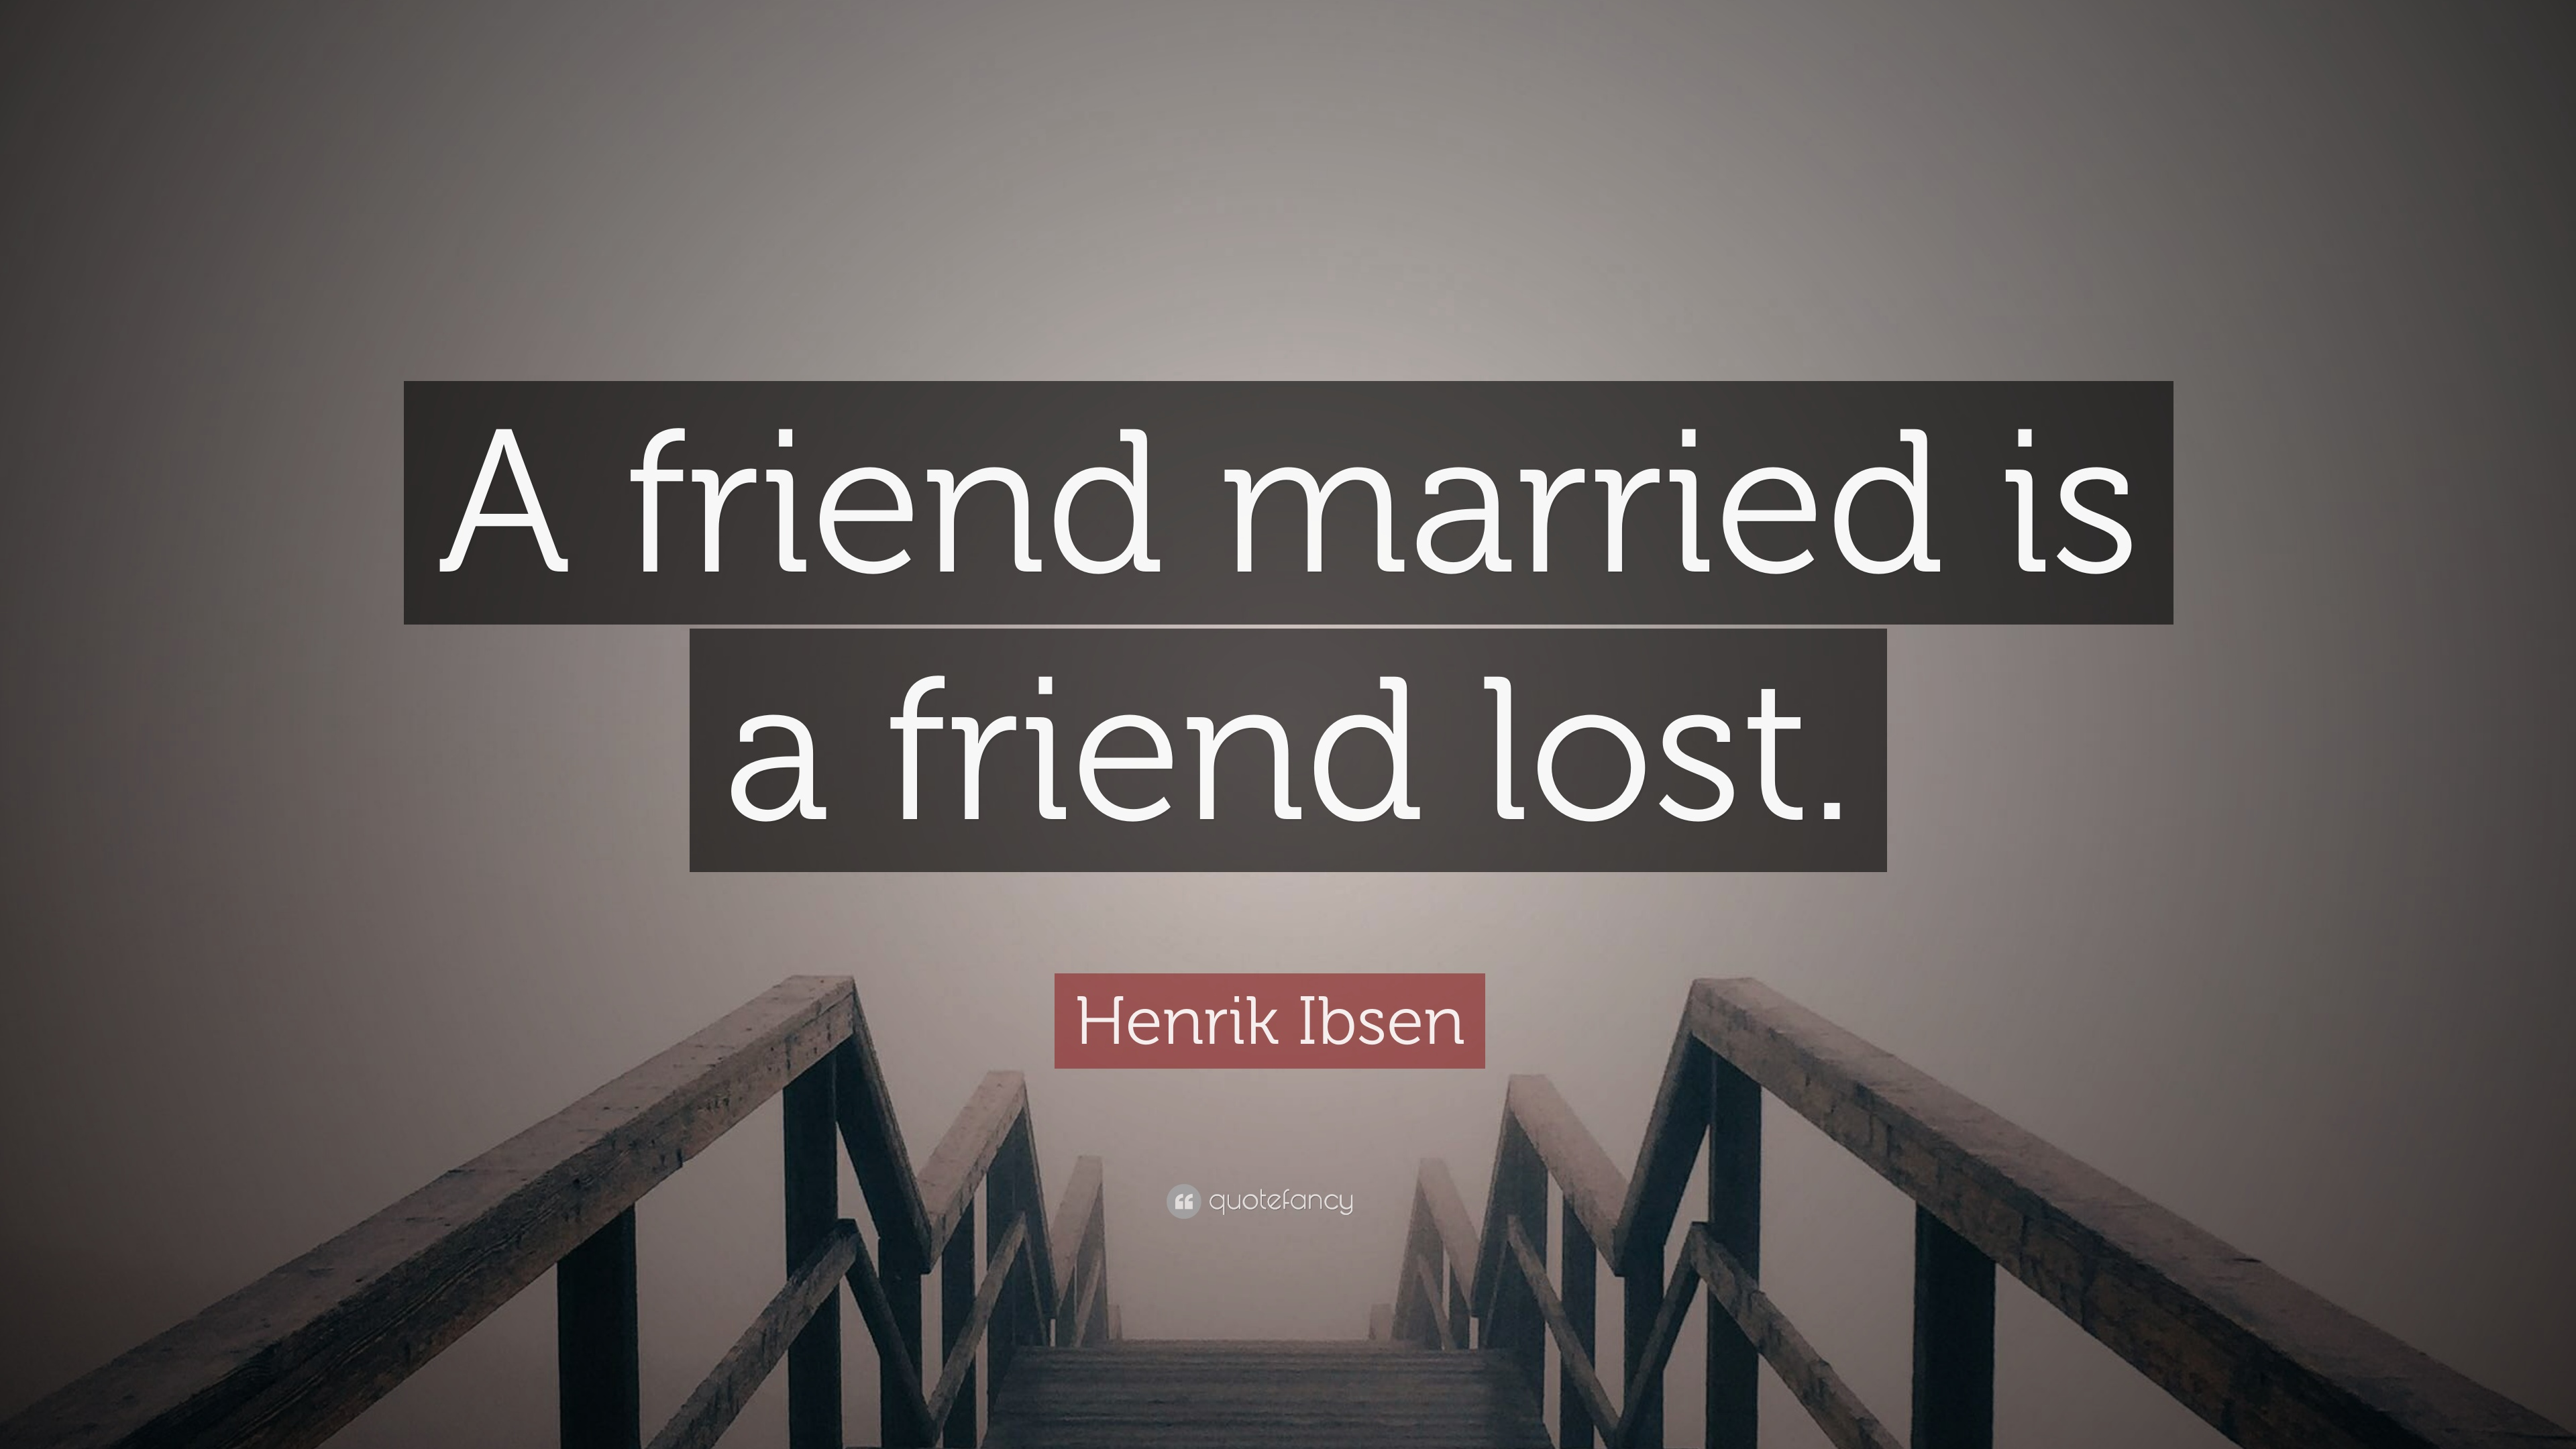 Married with a friend